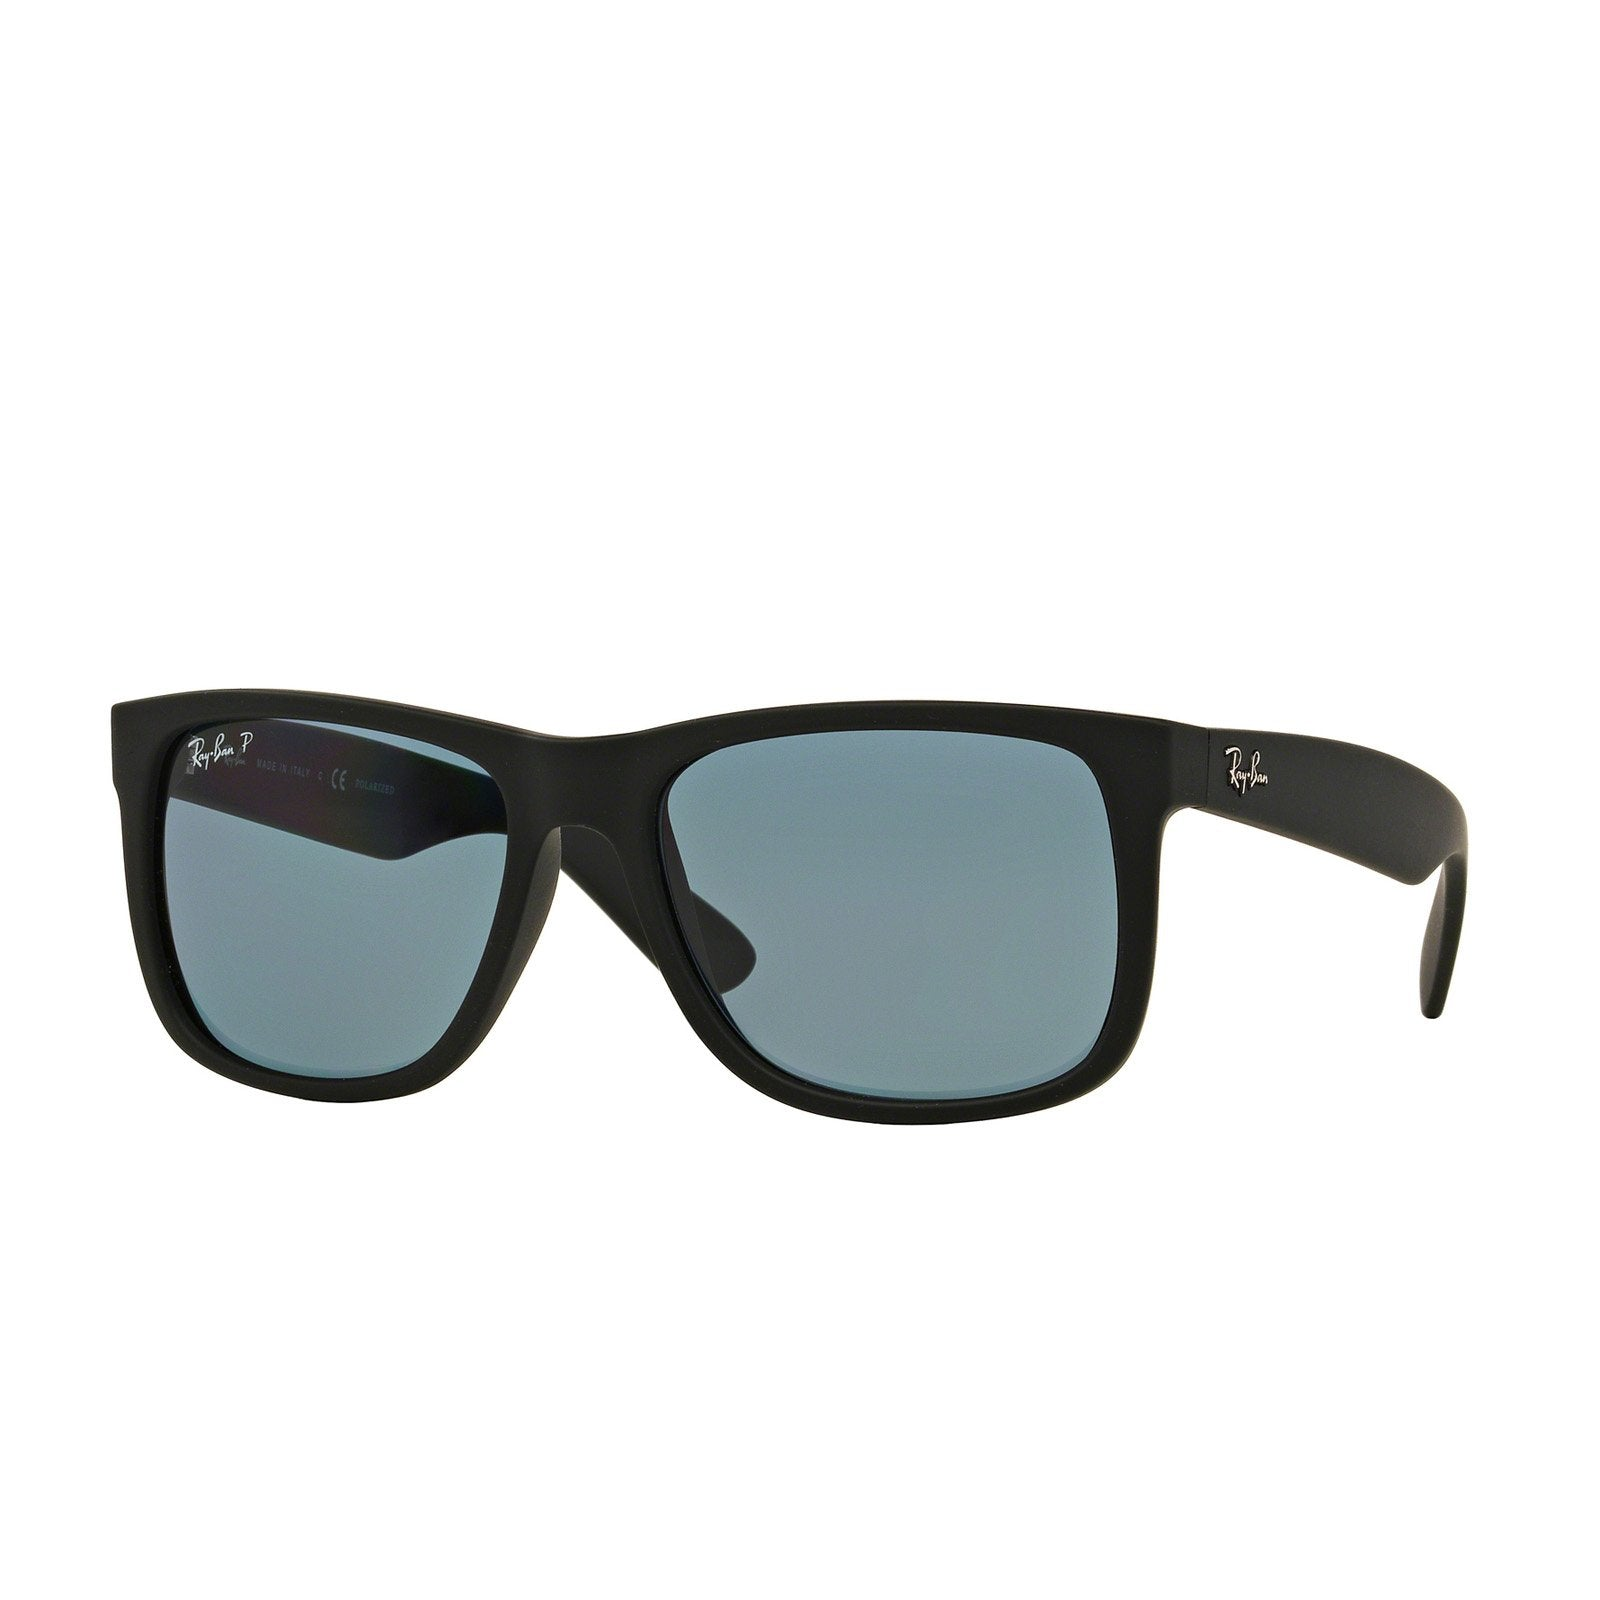 Ray-Ban RB4165 622/2V Sunglasses